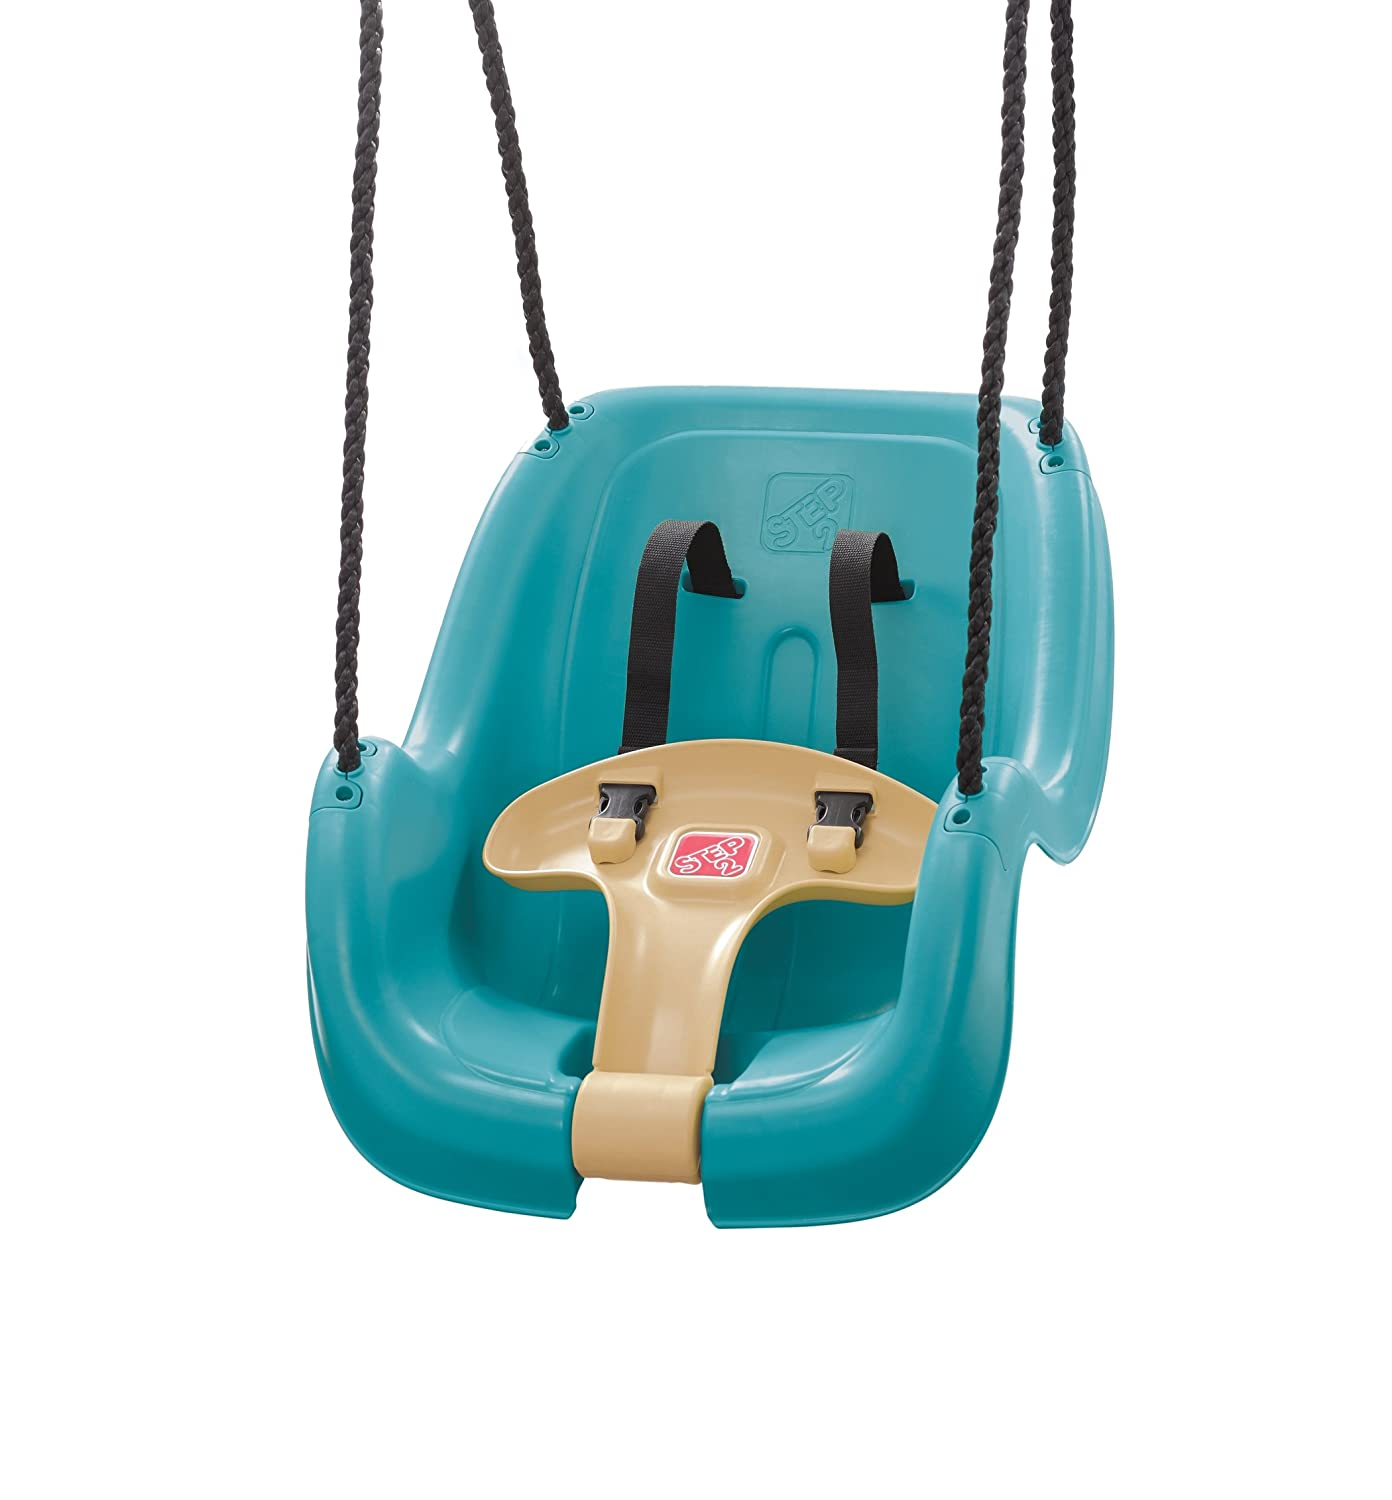 Amazon Step2 Infant To Toddler Swing Seat Turquoise Toys